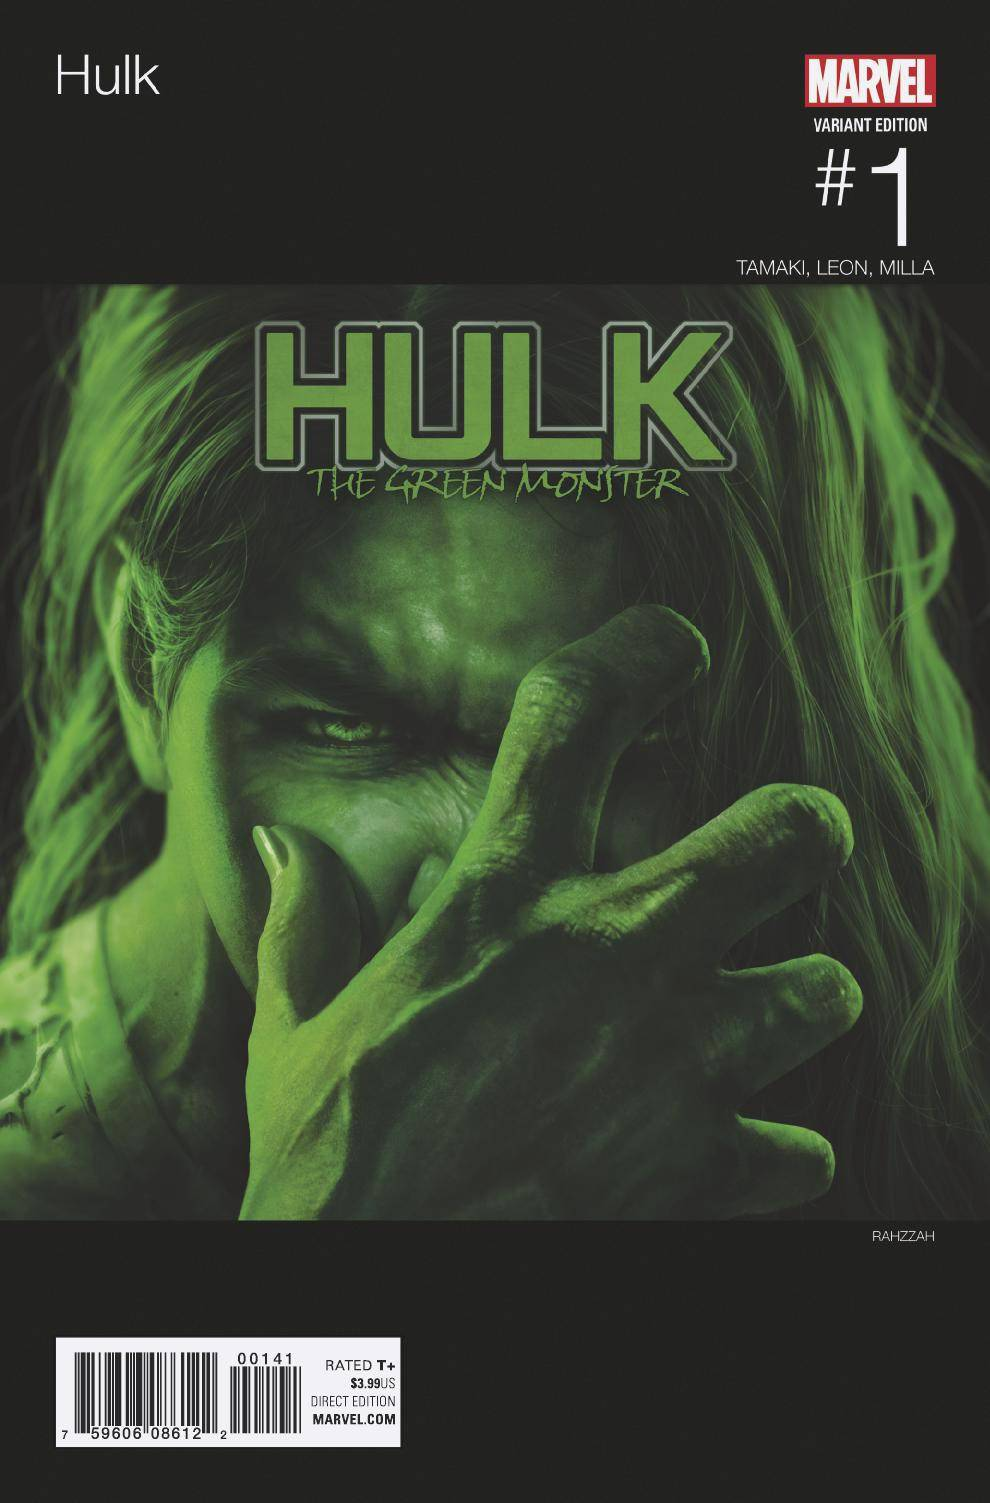 HULK #1 RAHZZAH HIP HOP VAR NOW